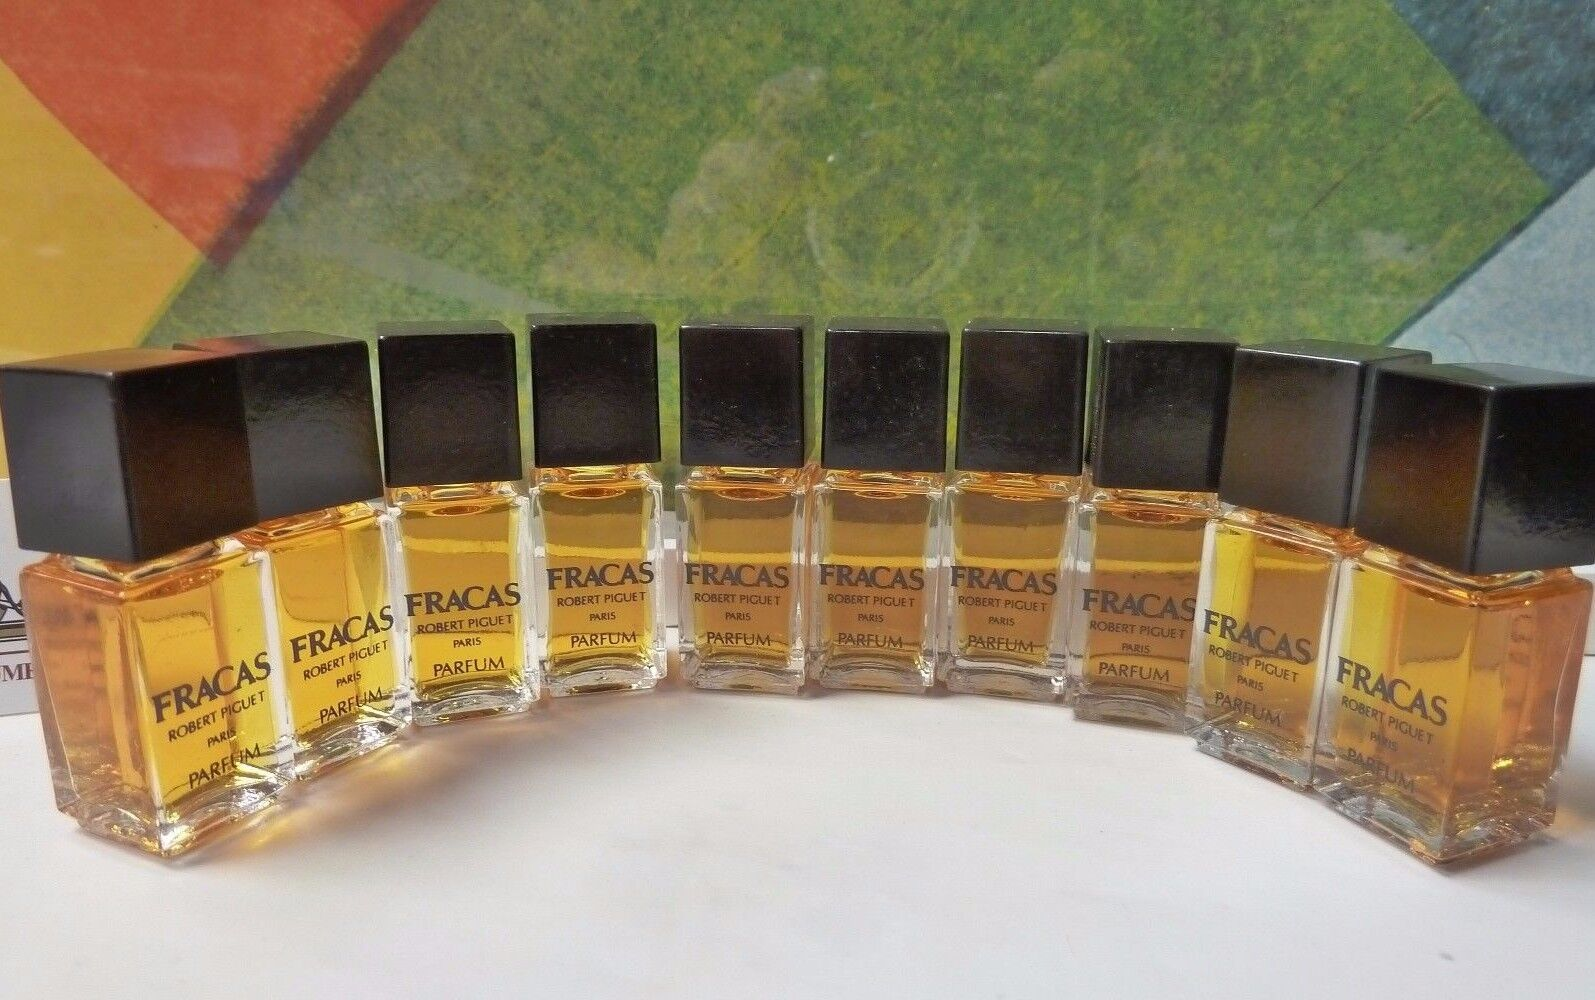 LOT OF 10 OLD FORMULA FRACAS PARFUM 4 ML / 0.13 OZ FULL CONCENTRATED, WINTAGE